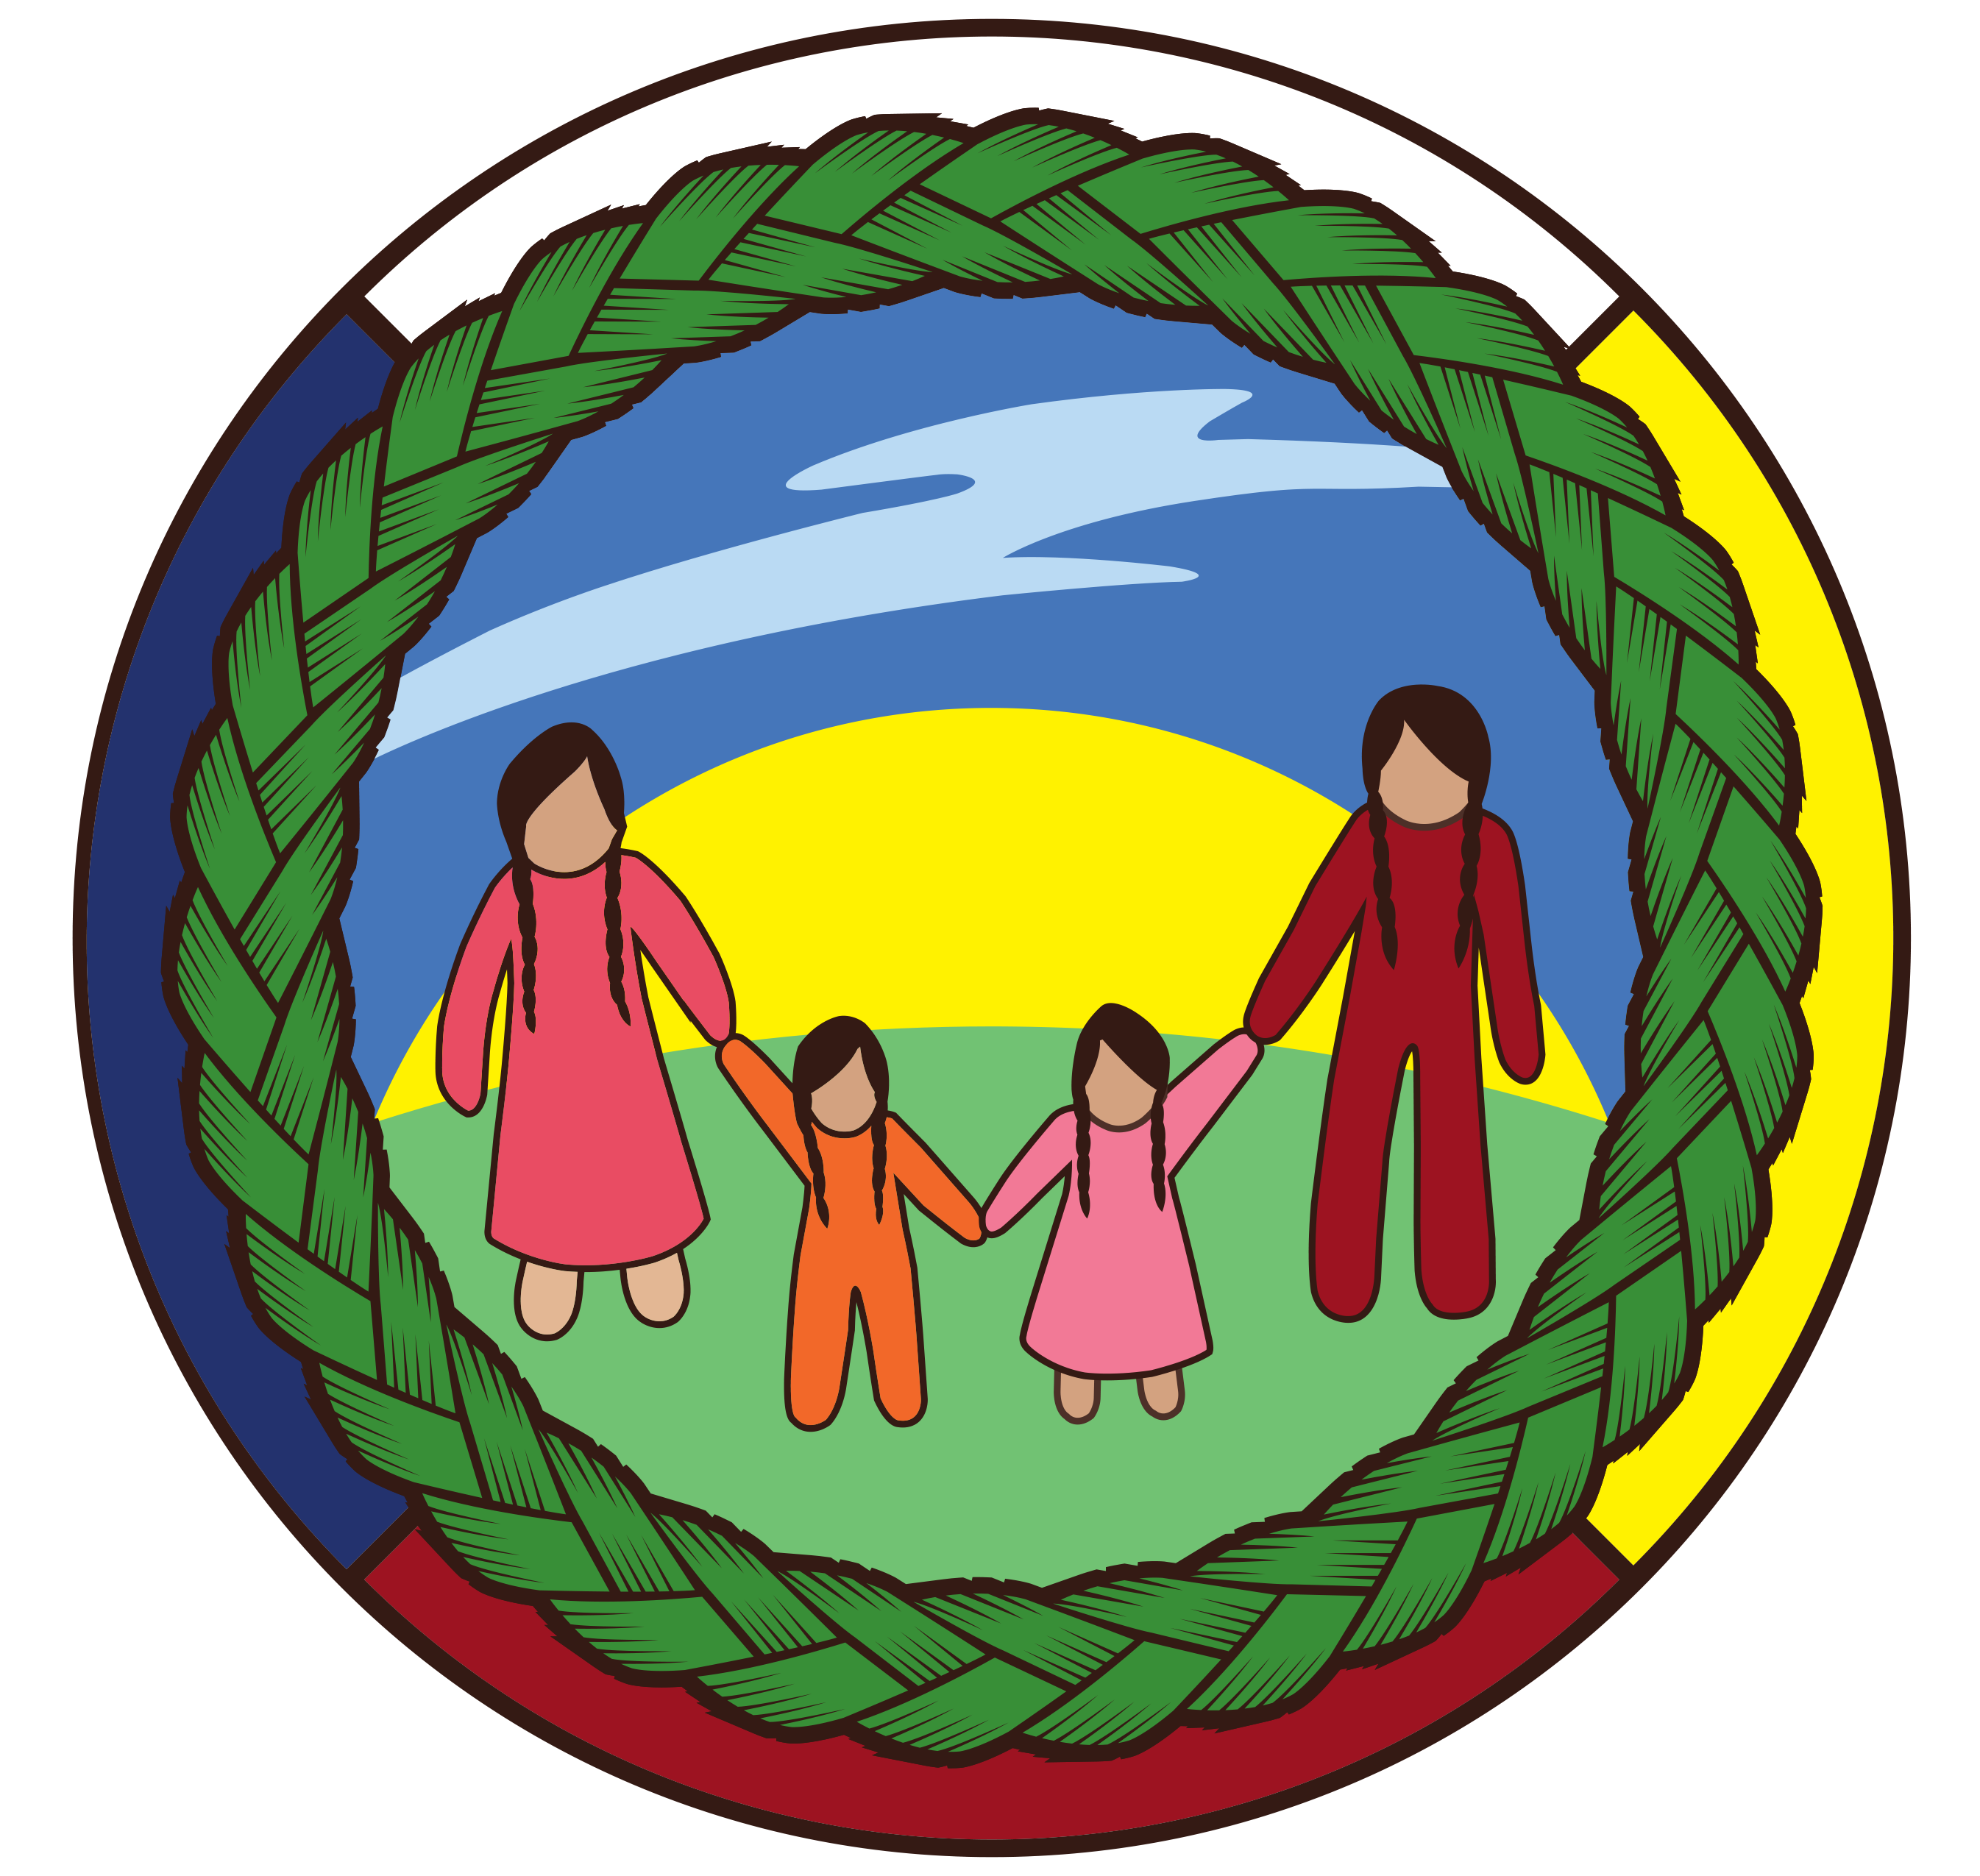 Kasohkowew Child Wellness Society